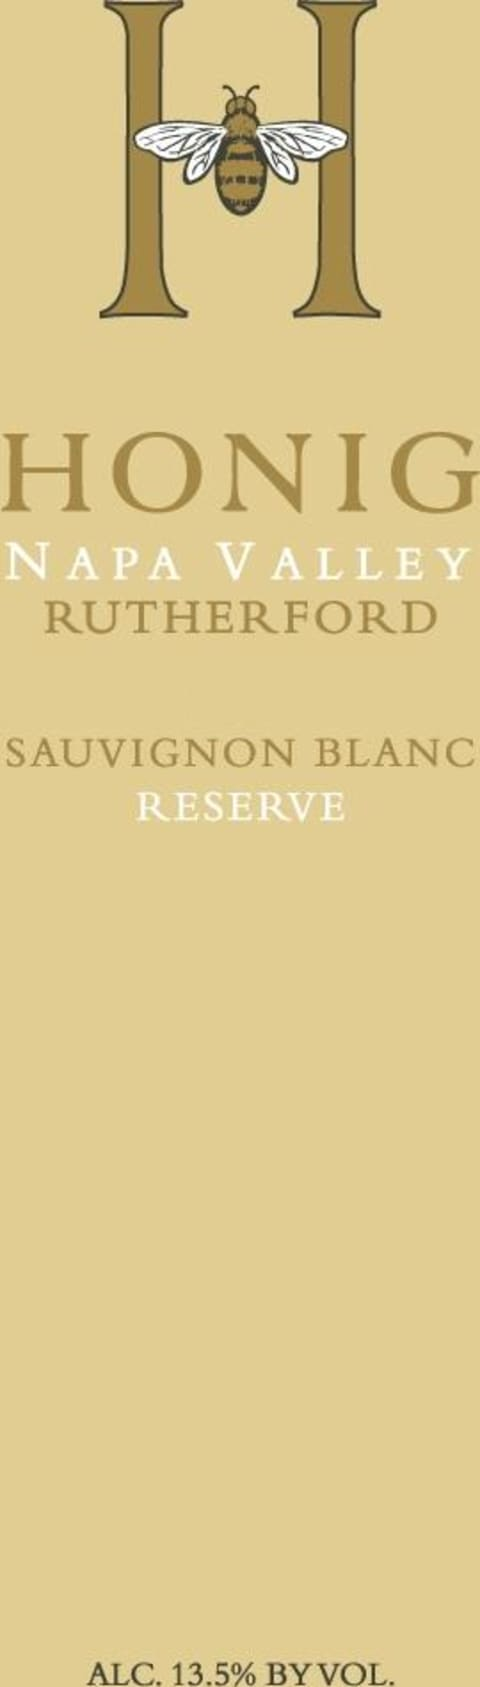 Honig Rutherford Reserve Sauvignon Blanc 2017 Front Label